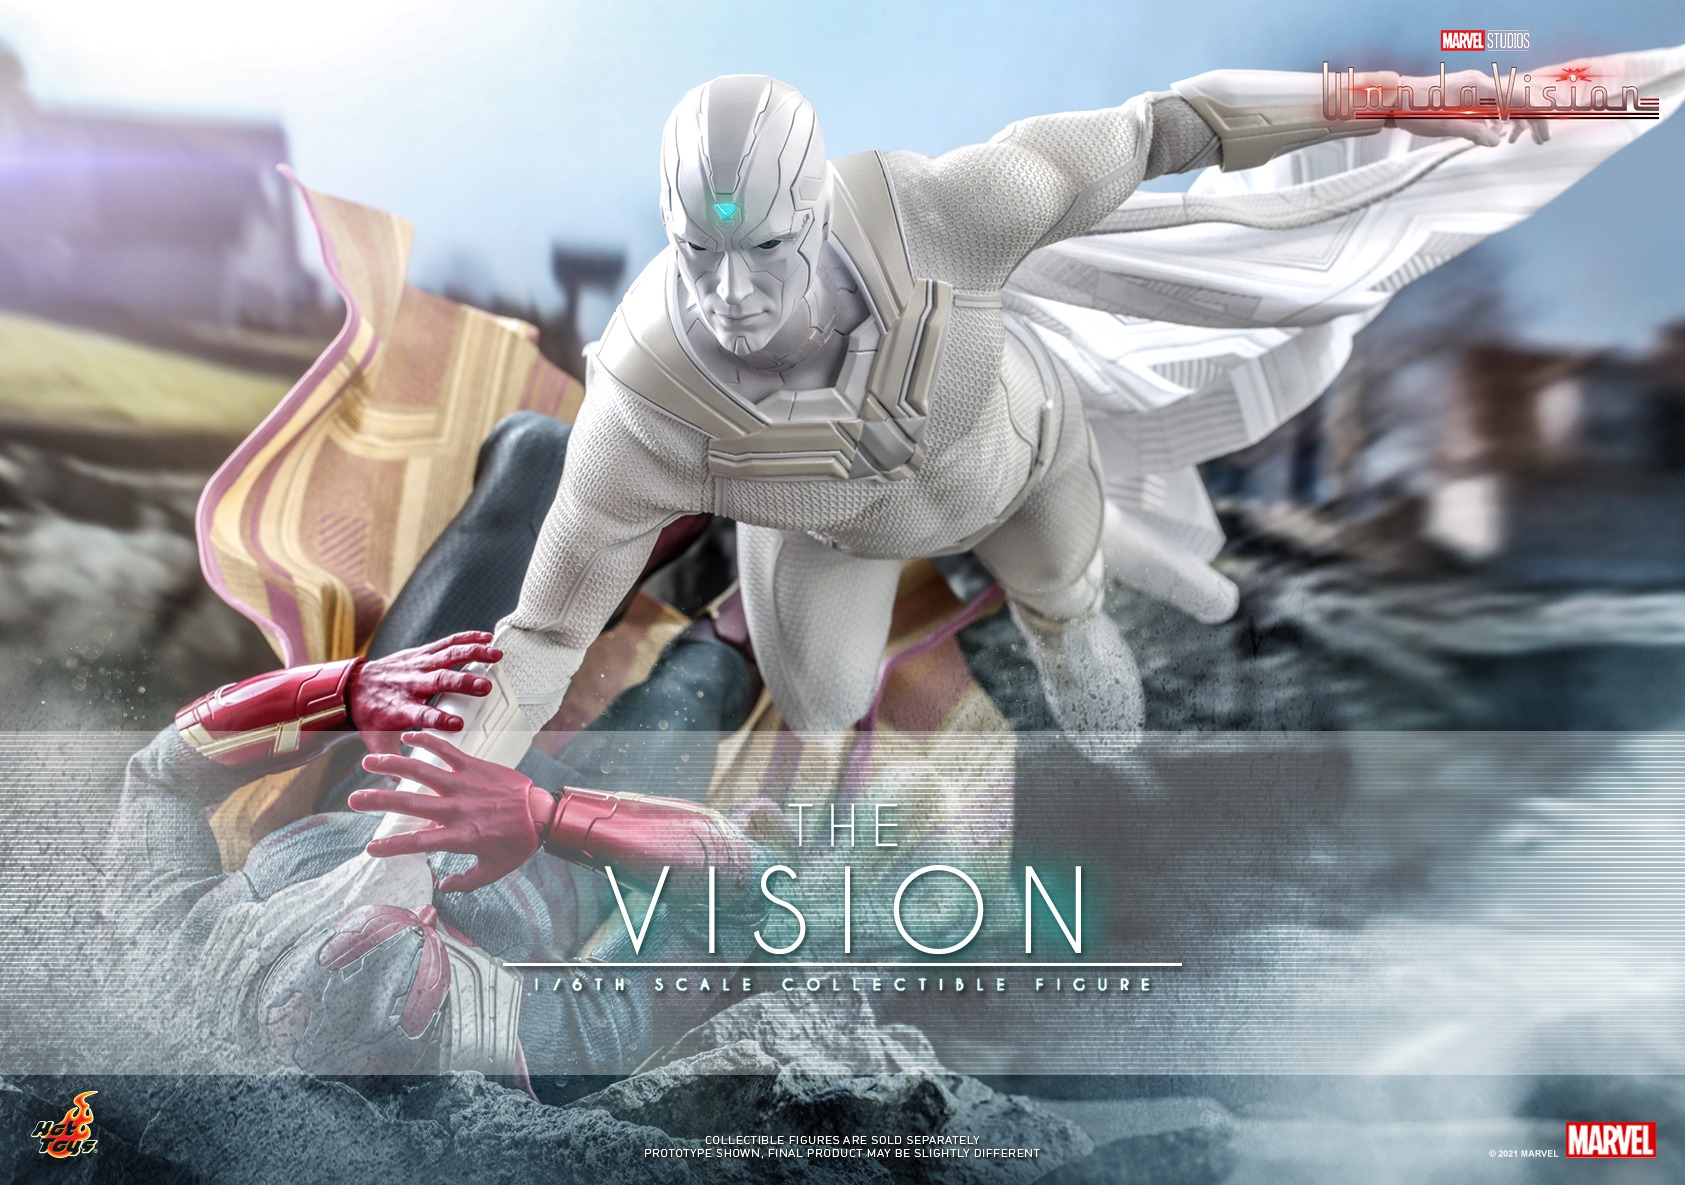 Hot Toys - WandaVision - The Vision collectible figure_Poster